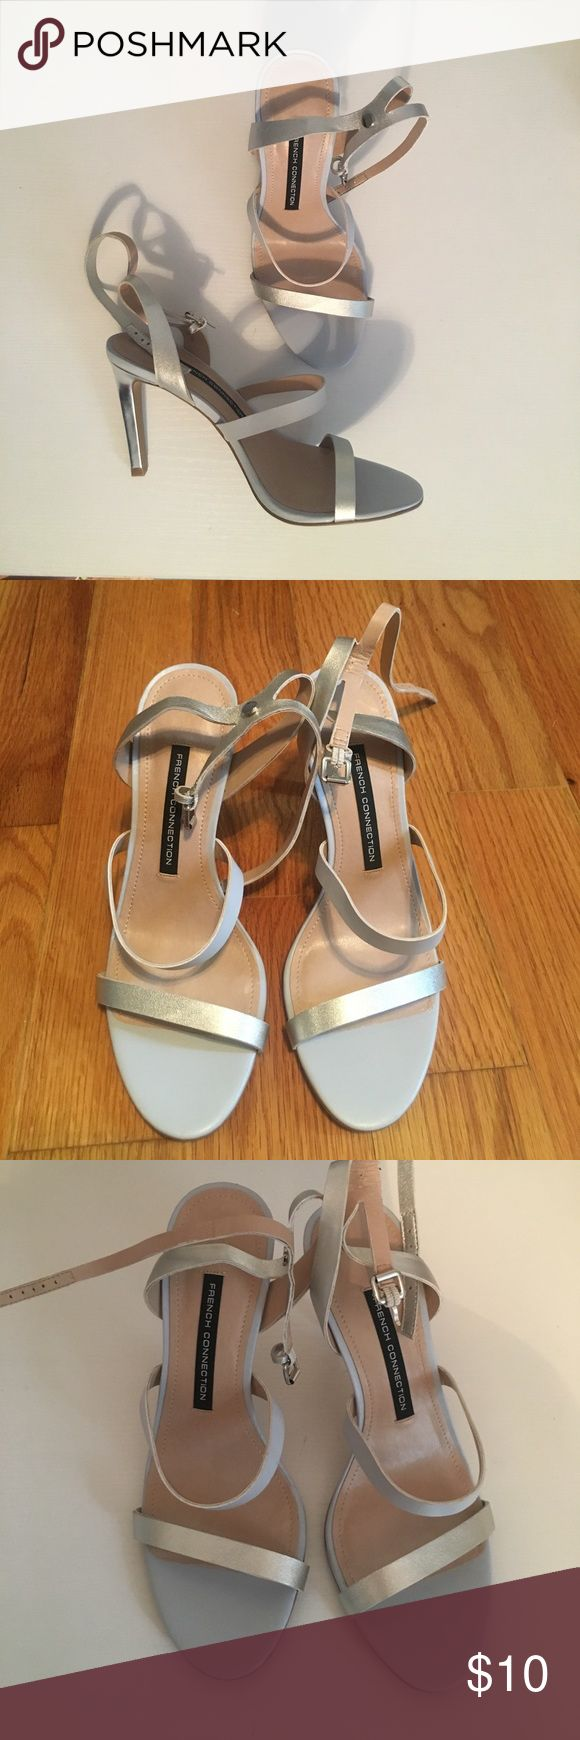 NWOT French Connection Silver Strappy Heels New never worn French Connection metallic silver and light gray/powder blue strappy Heels Size 37 (7). French Connection Shoes Heels